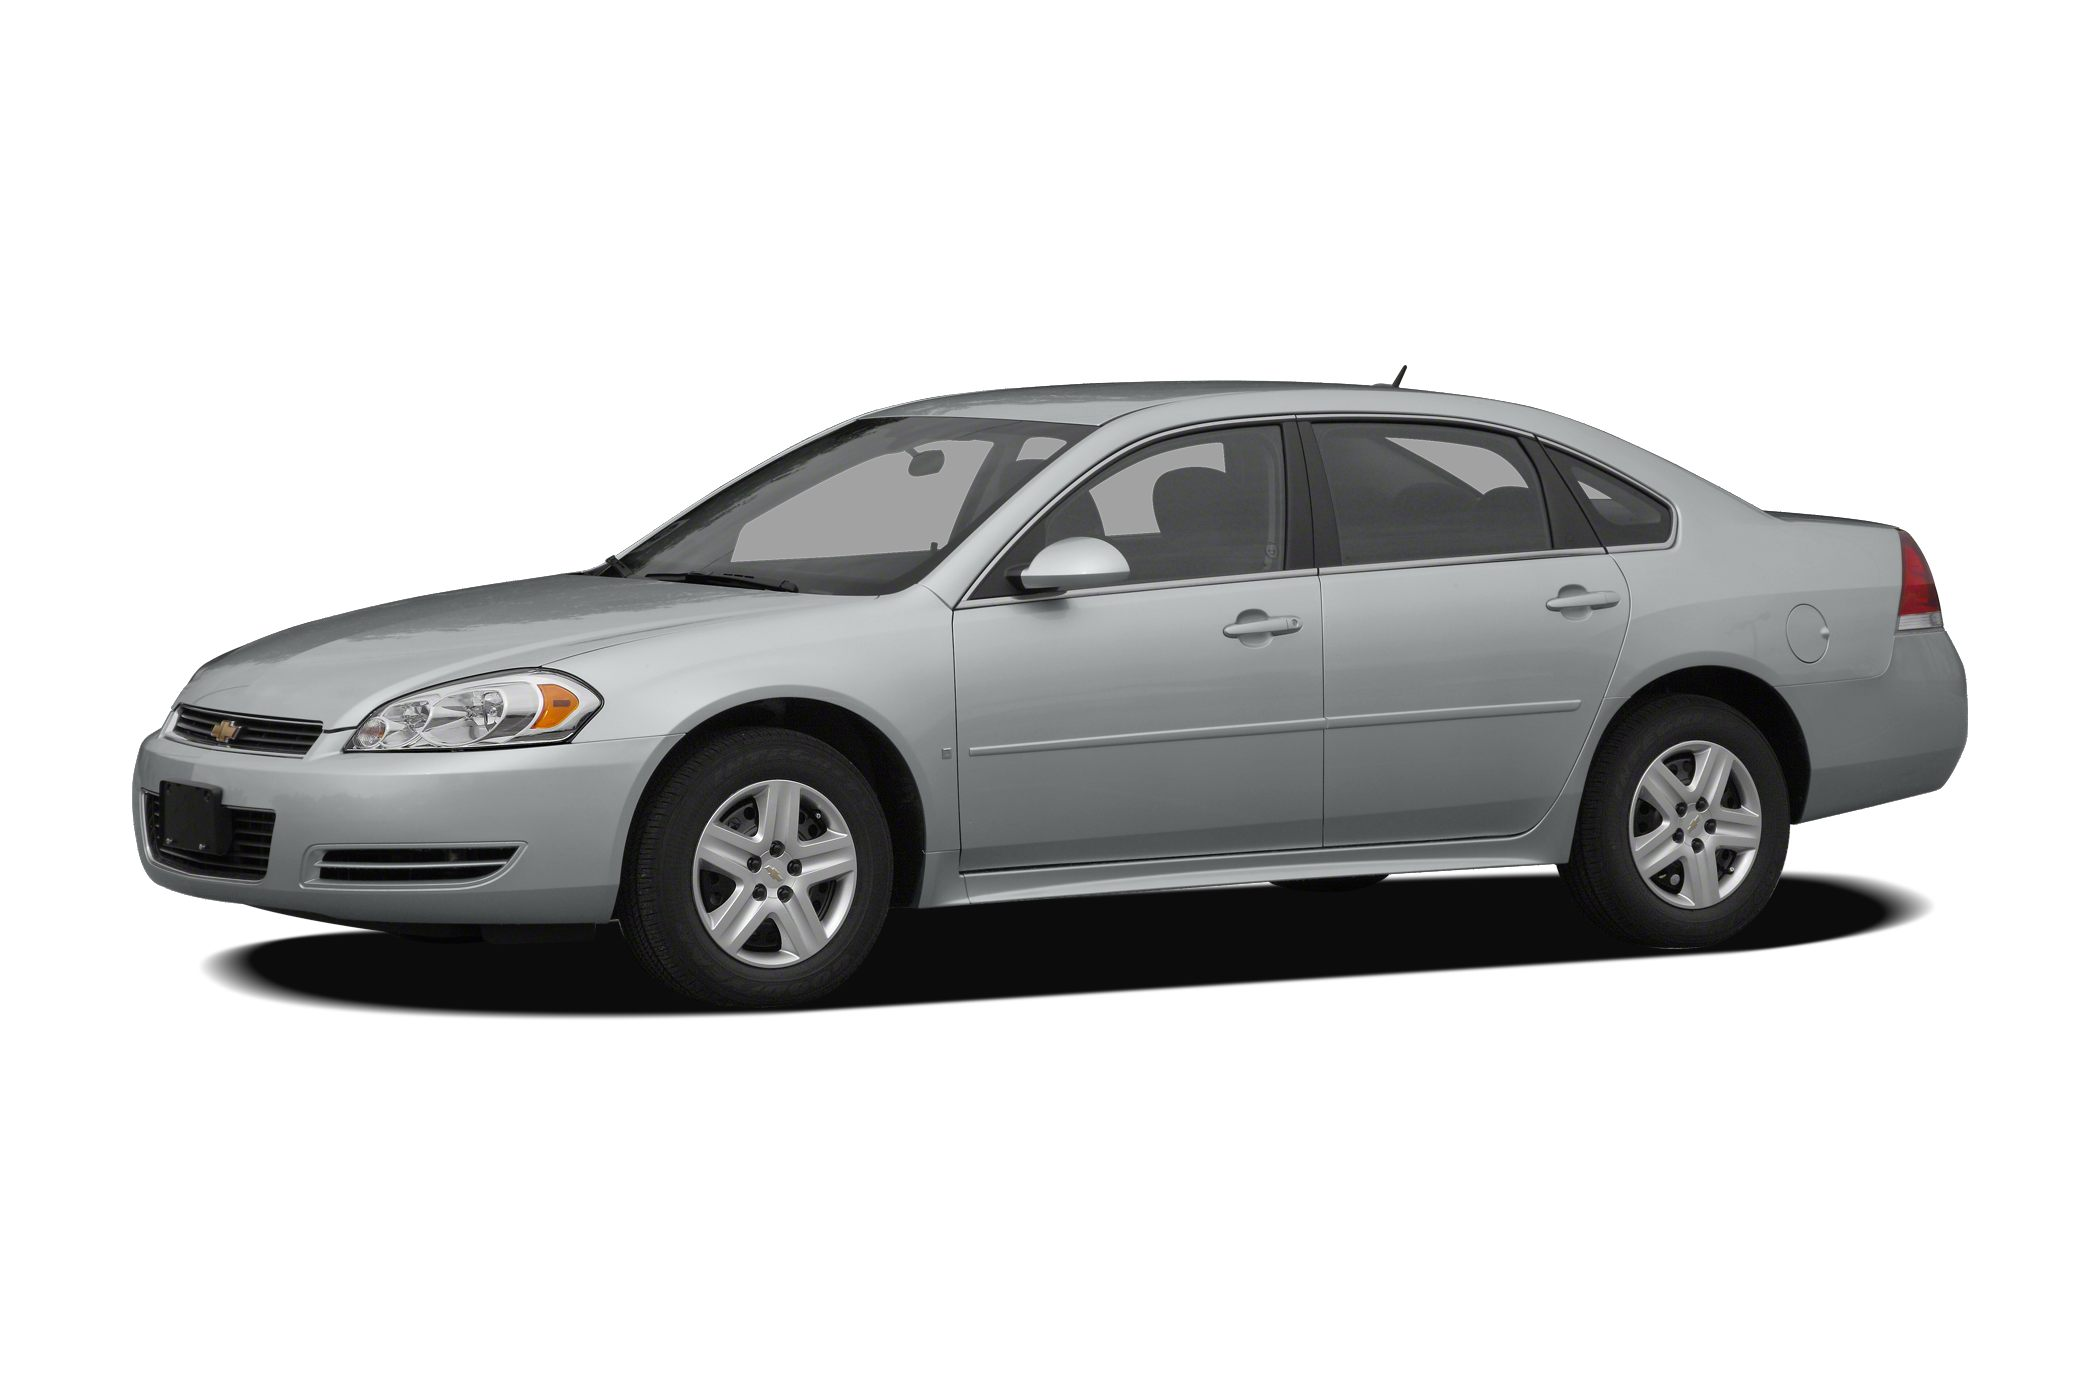 2011 Chevrolet Impala LS Sedan for sale in Philadelphia for $10,990 with 67,020 miles.